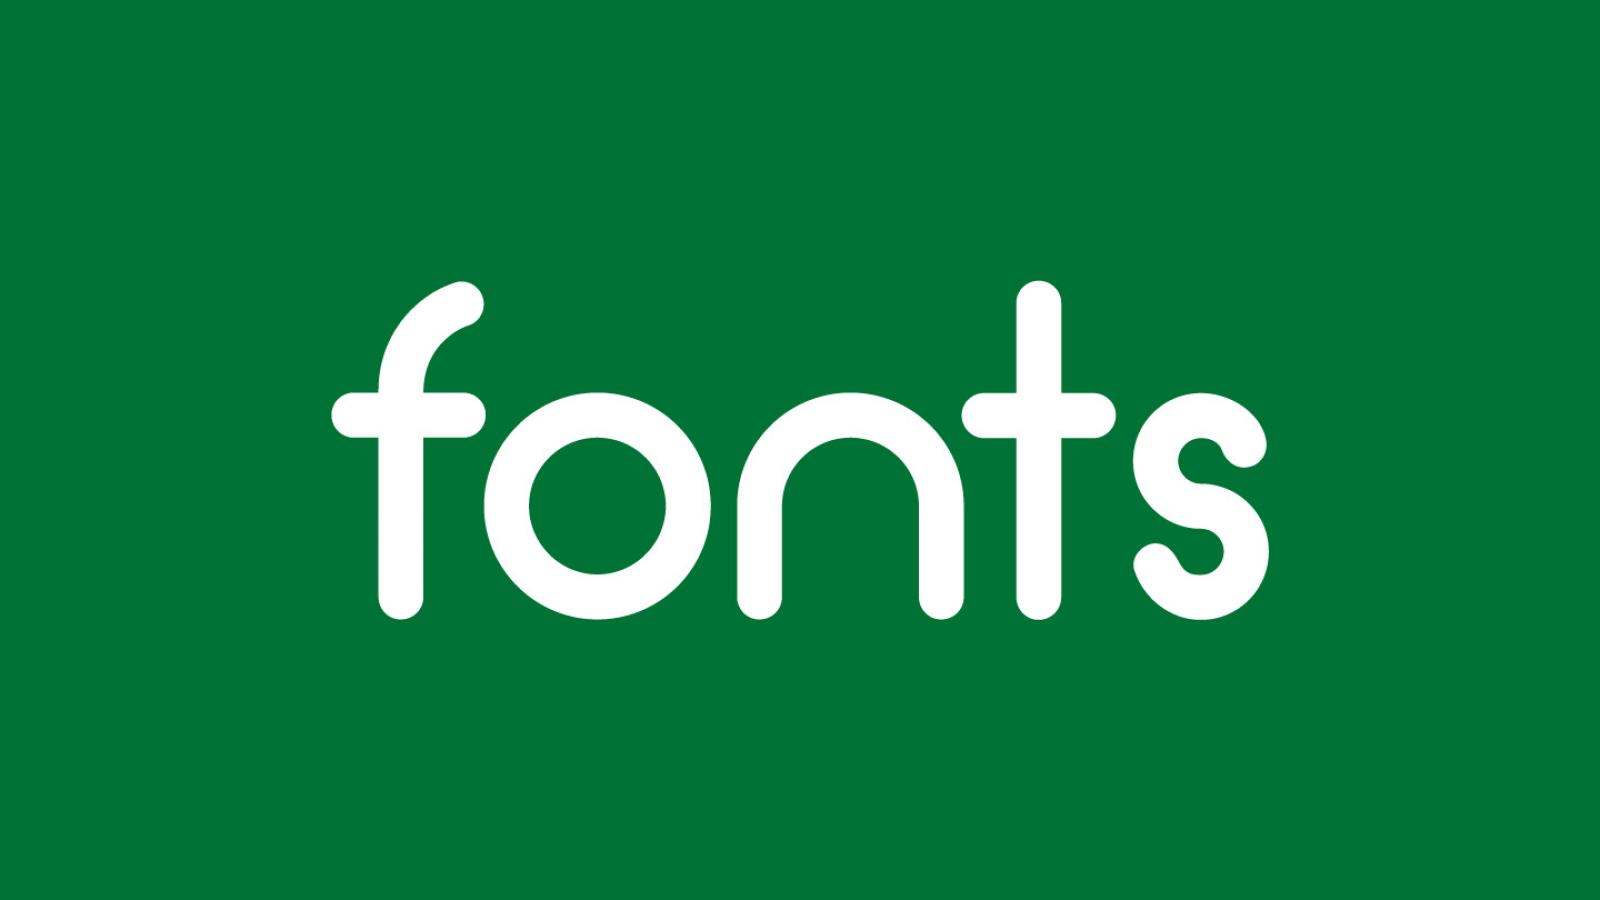 Friday Fresh Free Fonts - Cormorant, Arciform